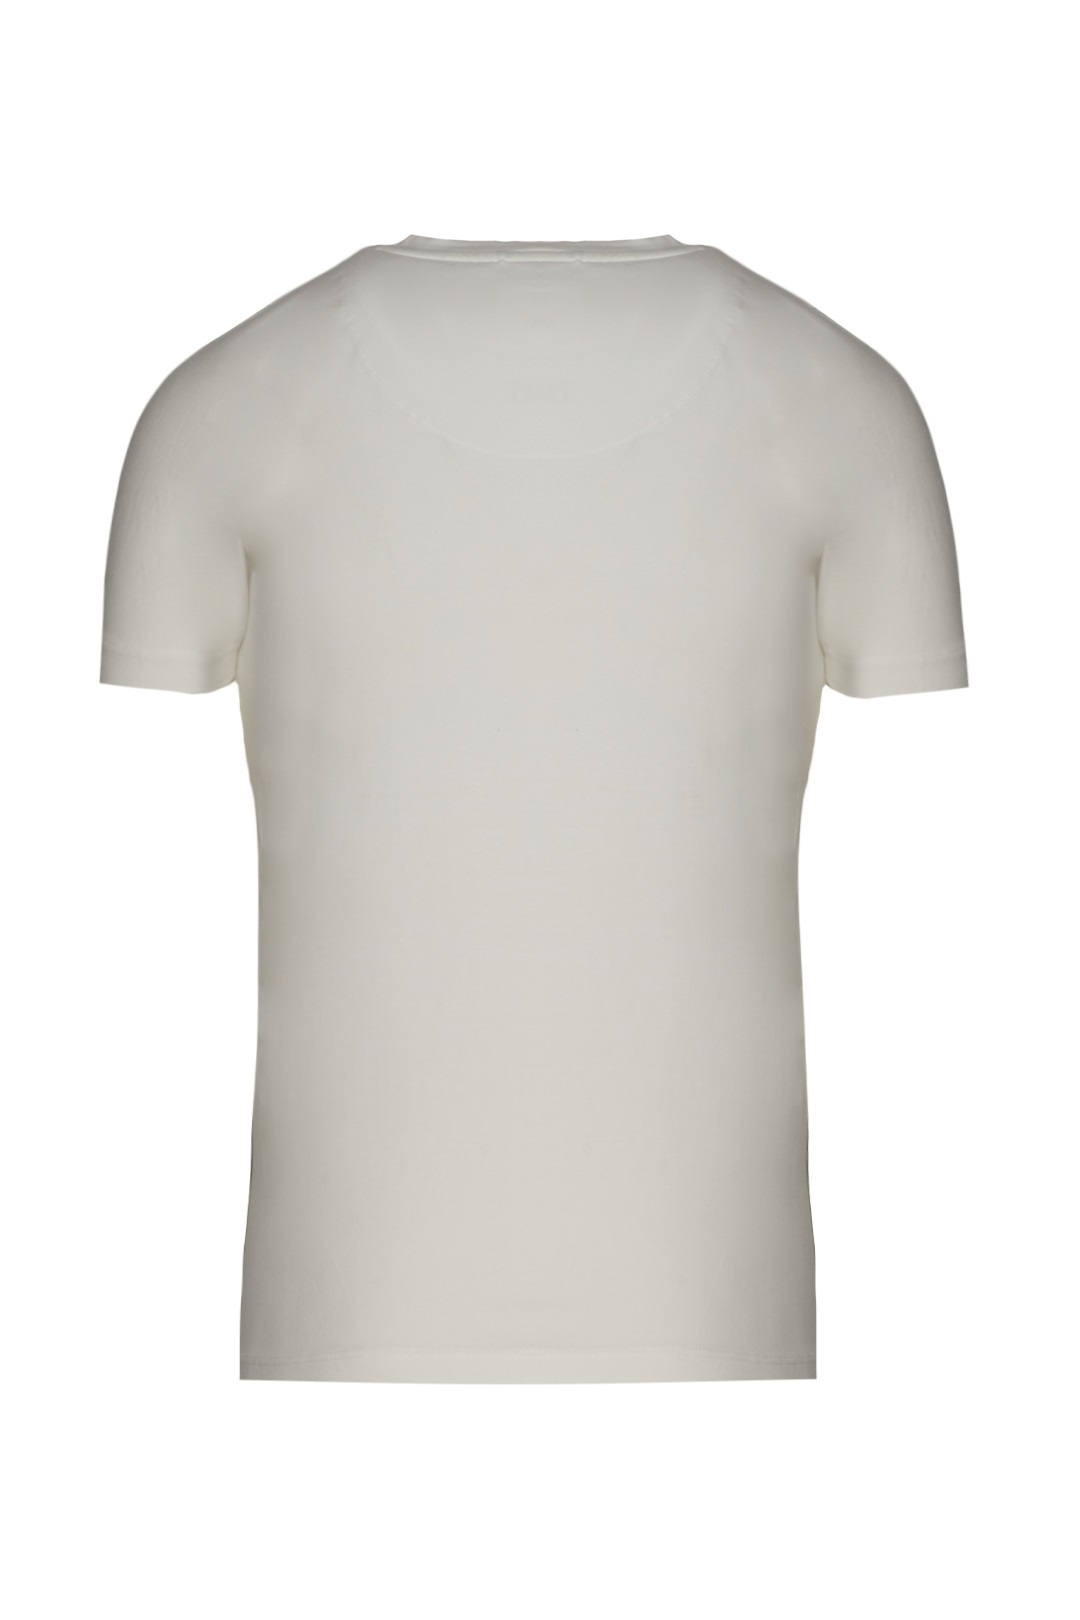 TS1849 - T-SHIRT M.C. ACTIVE 2